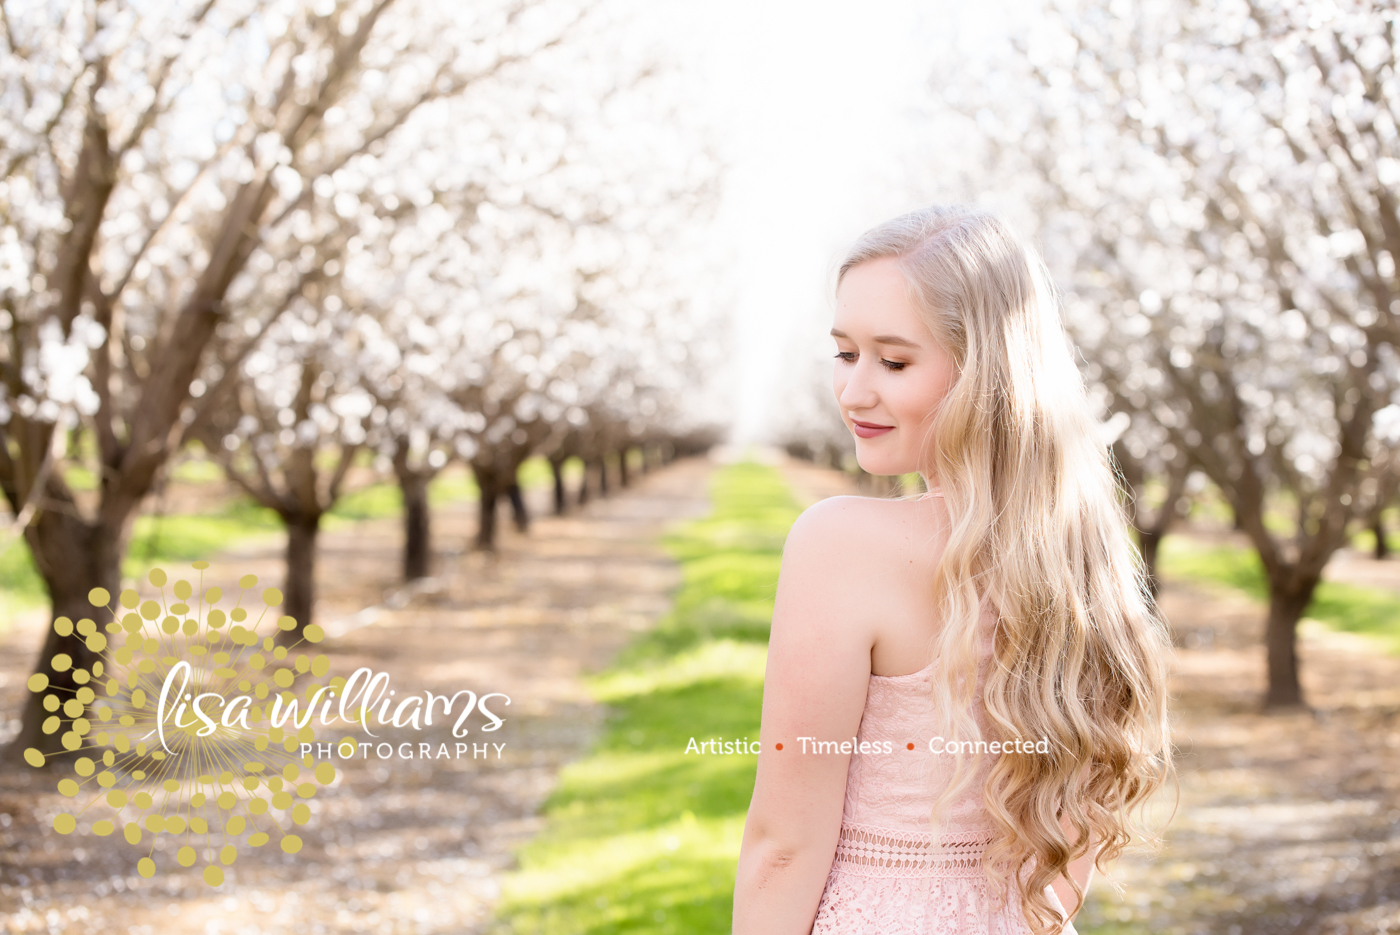 Lisa Williams photography – grass valley portrait photographer- senior portrait photographer- northern California senior portraits- Nevada county senior portraits – Colfax Senior Portraits – Rocklin Senior Portraits- Roseville Senior Portraits – t-17.jpg